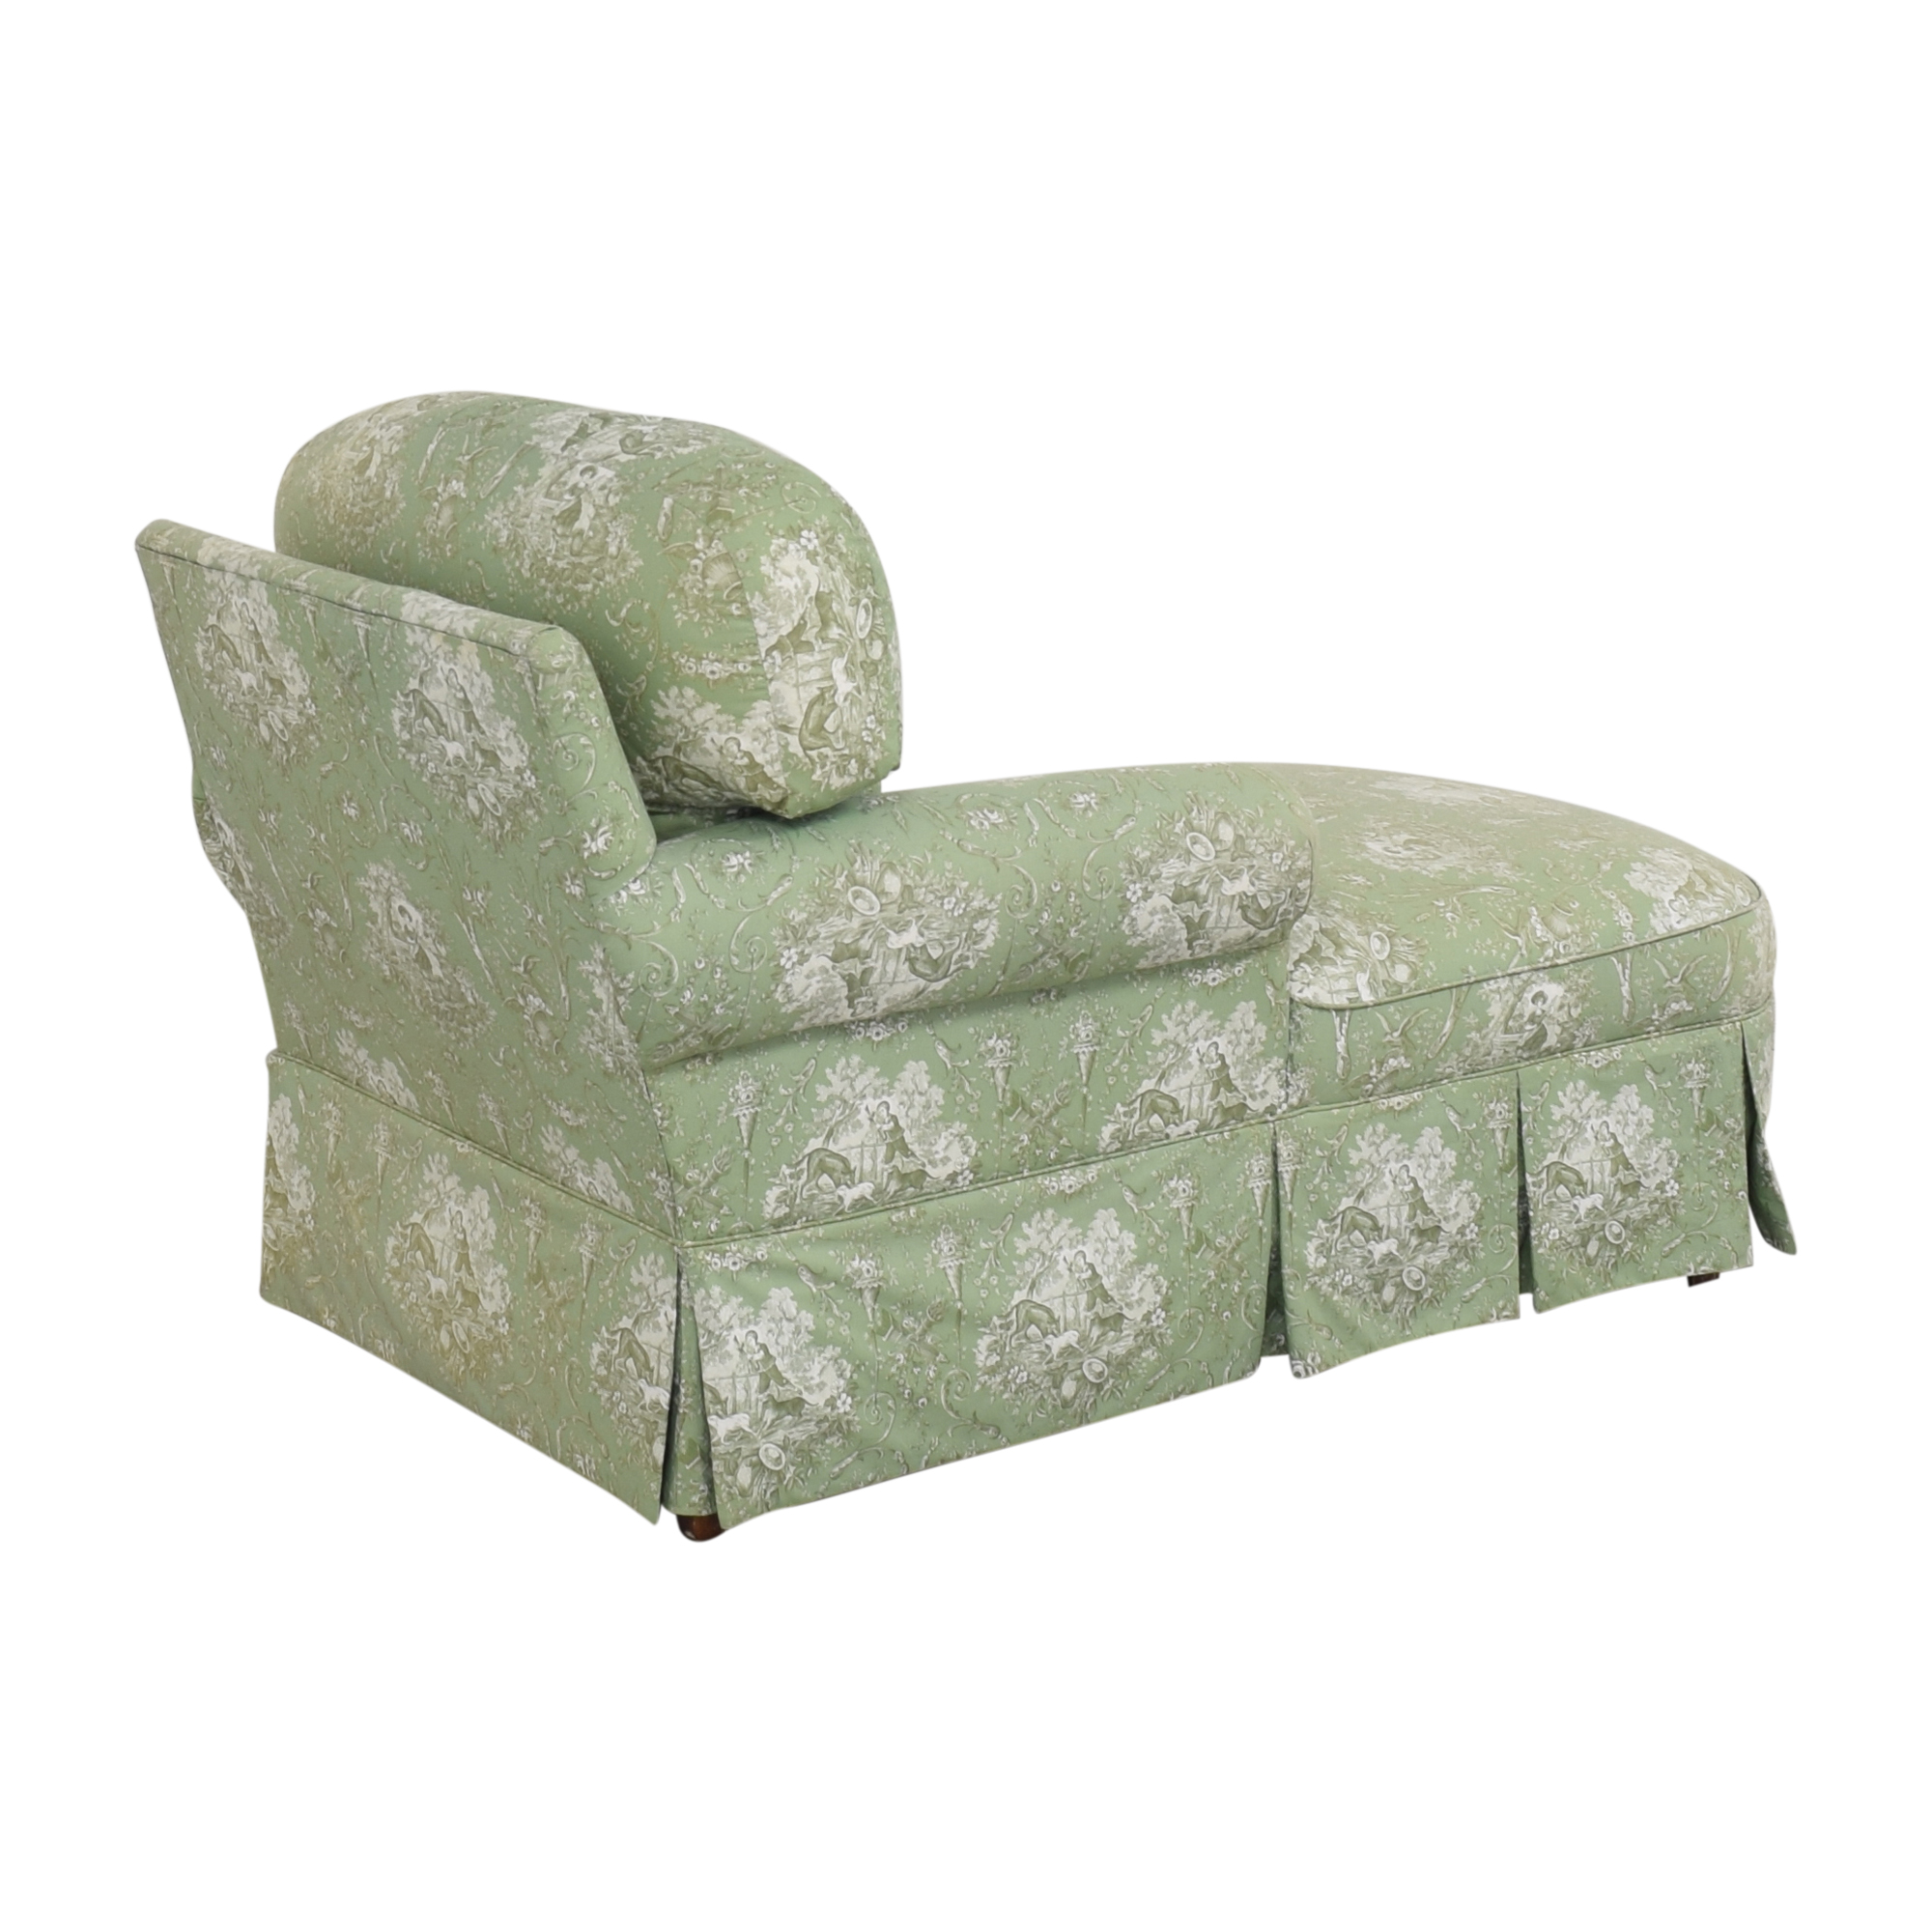 Pierre Deux Pierre Deux Skirted Chaise Lounge green and white